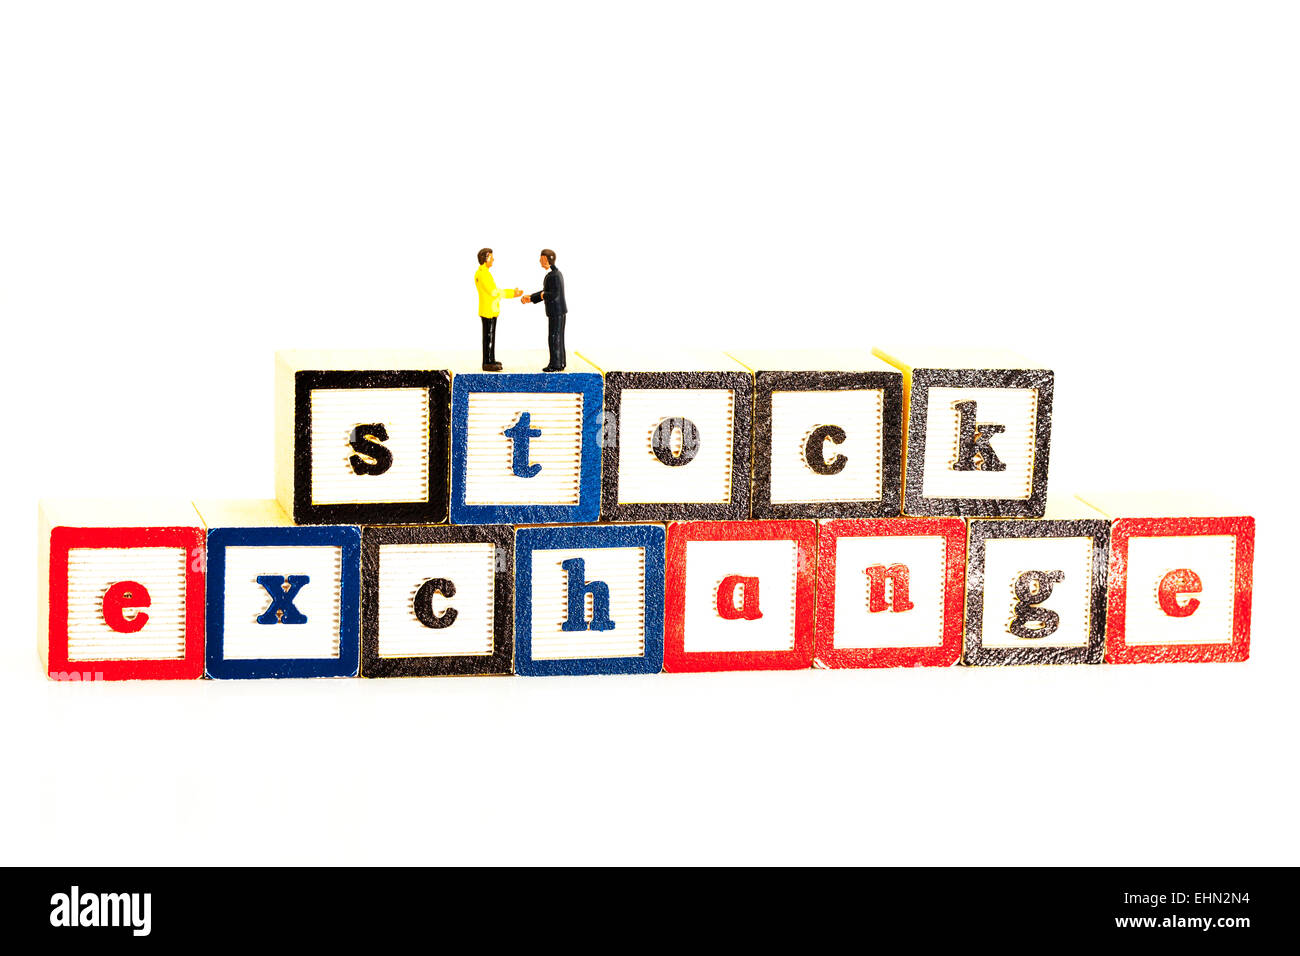 stock exchange deal shares stocks ftse index deals business businessmen isolated cut out cutout white background - Stock Image